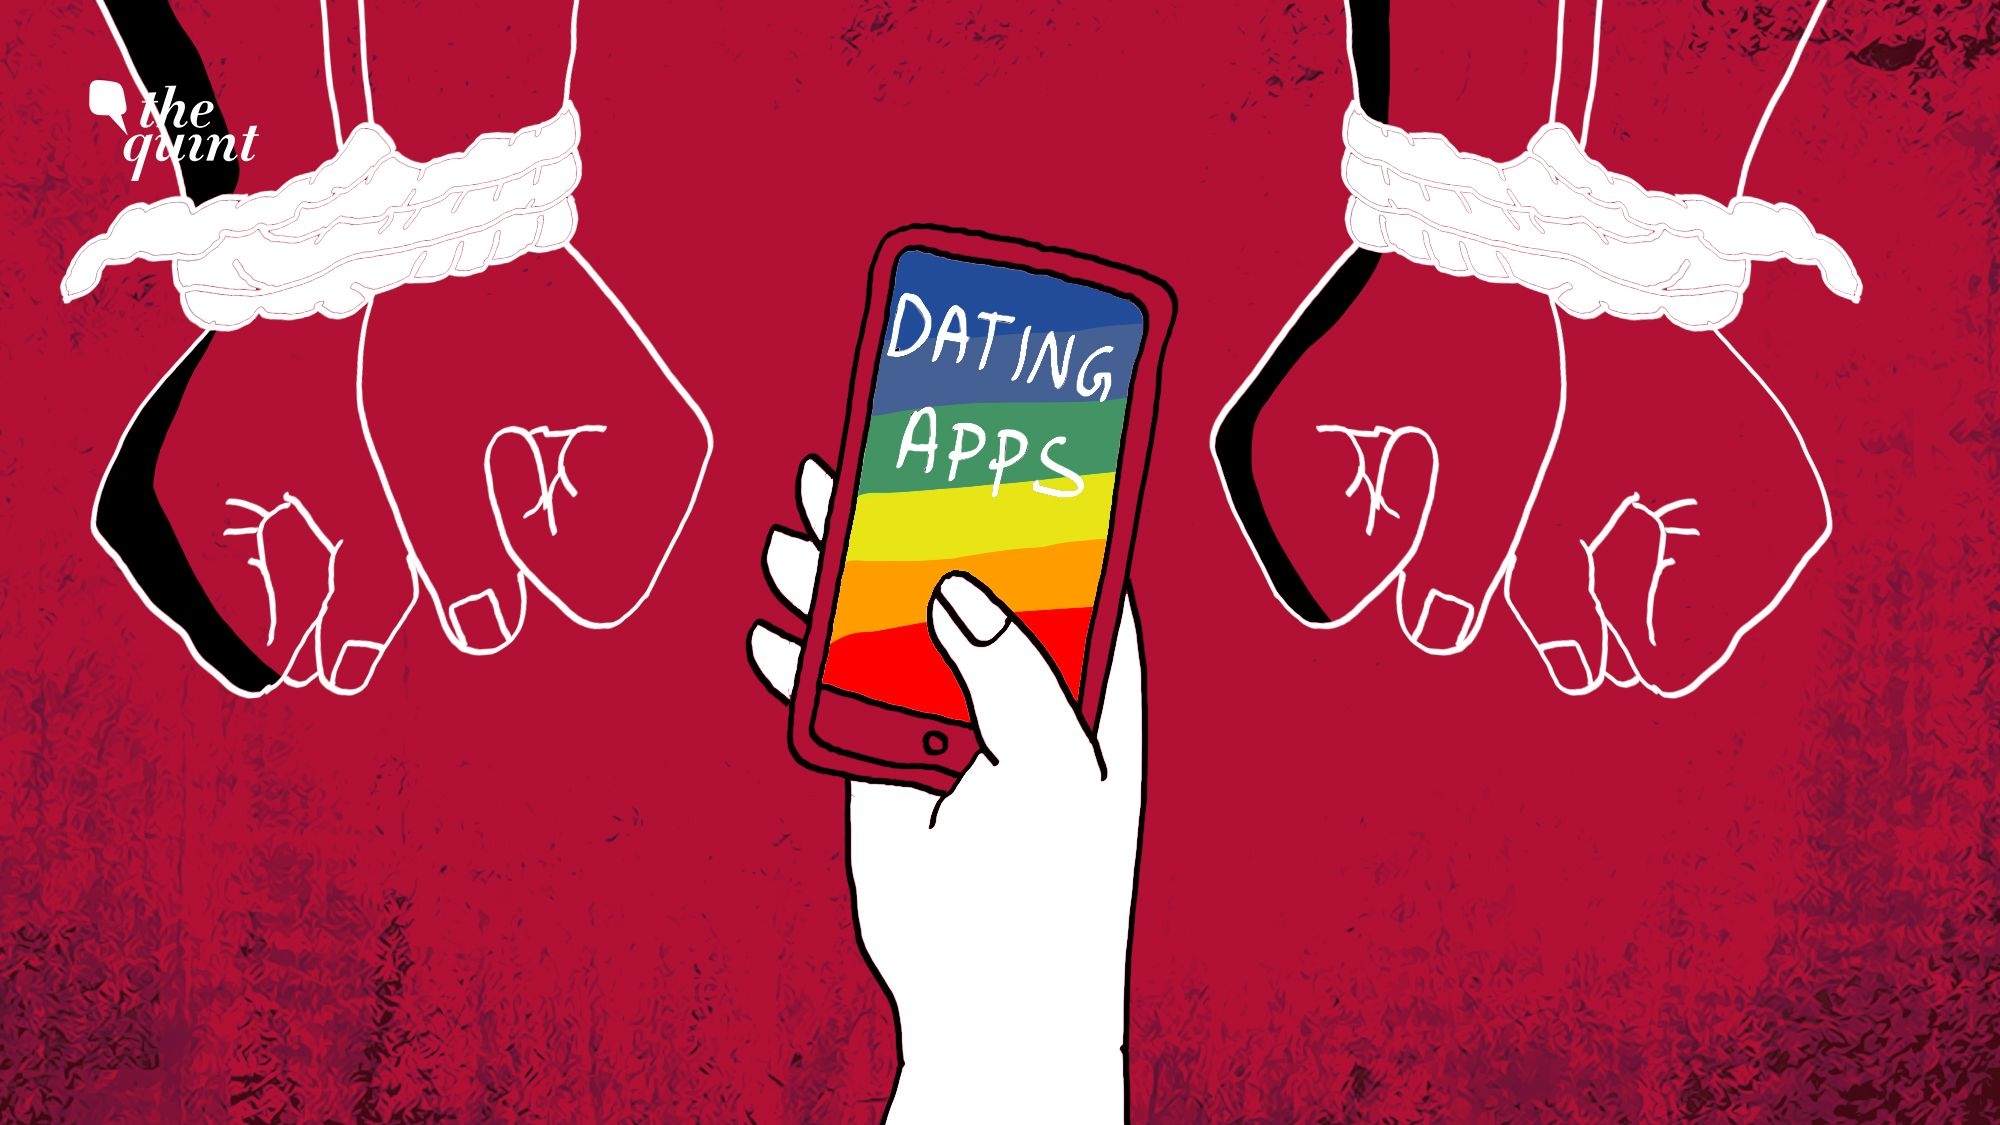 Gang Honey-Traps CEOs, Corporate Execs on Dating Apps for Gay Men